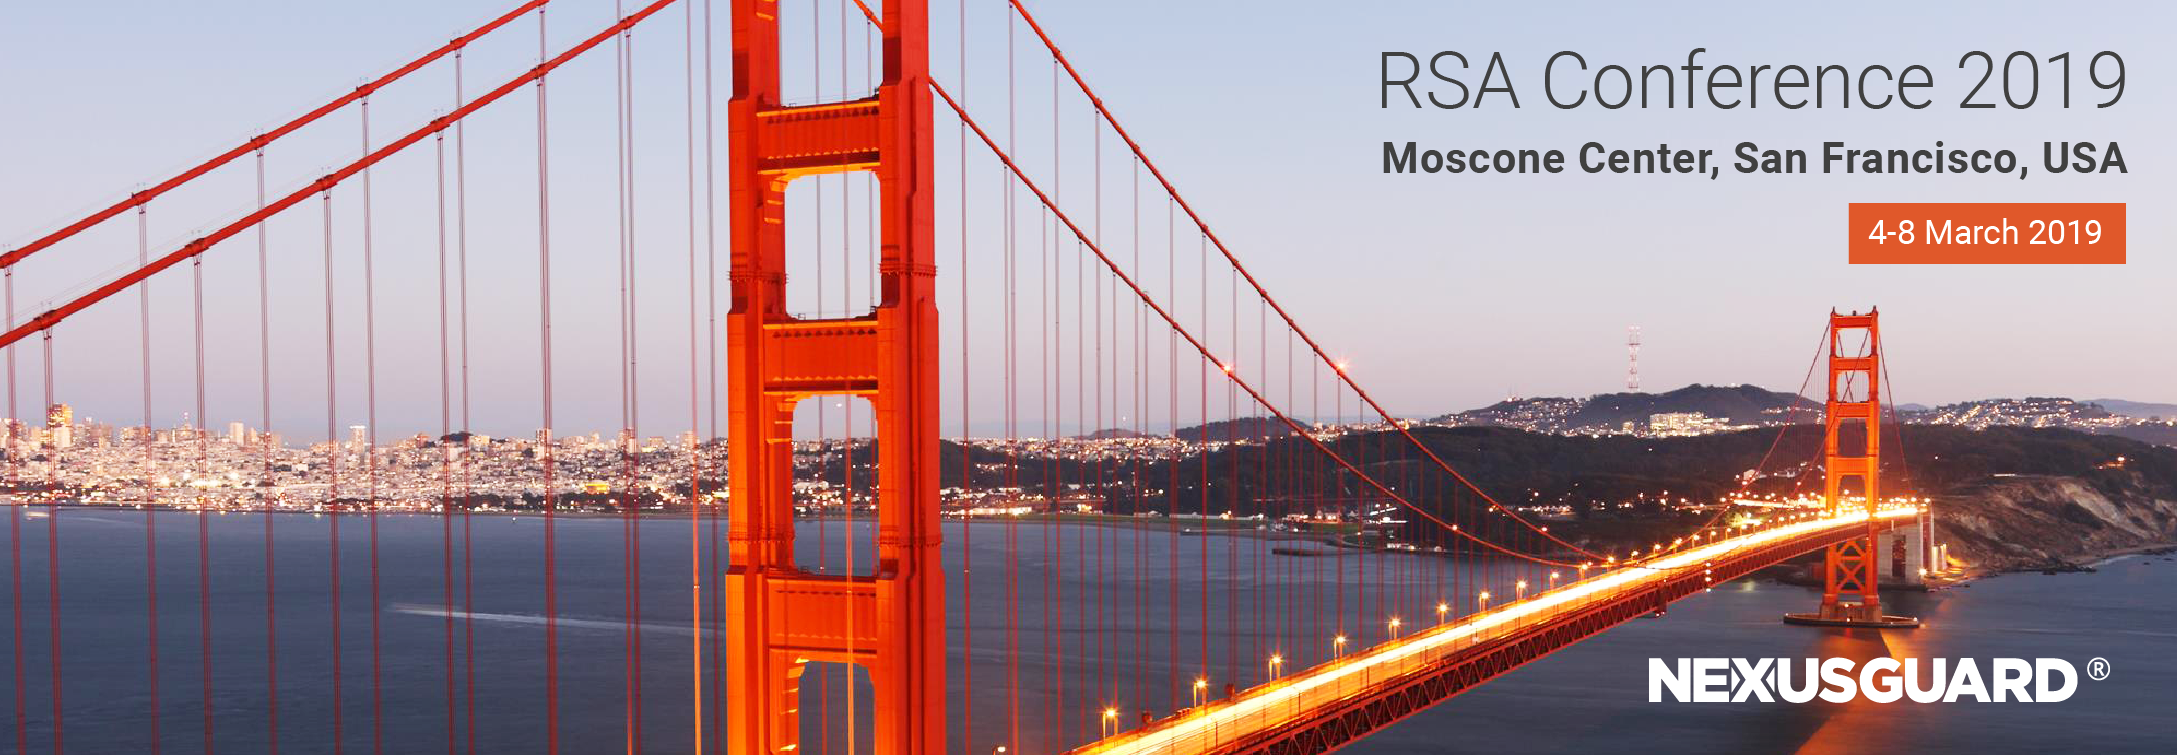 RSA Conference 2019_Homepage